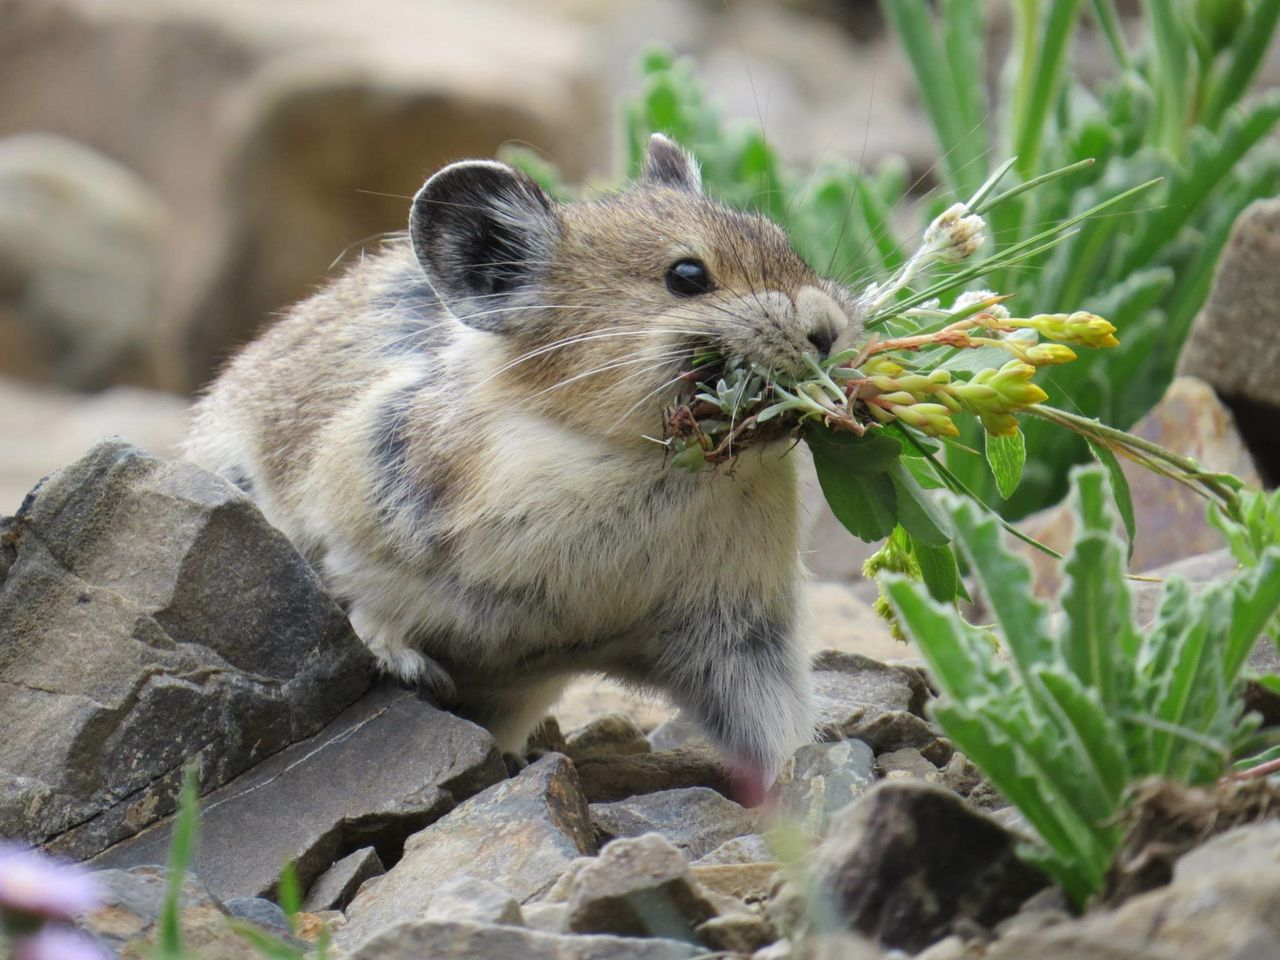 The American pika, the smaller relative of rabbits and hares, is herbivorous. It eats a wide variety of green plants including grasses, thistles and fireweed.